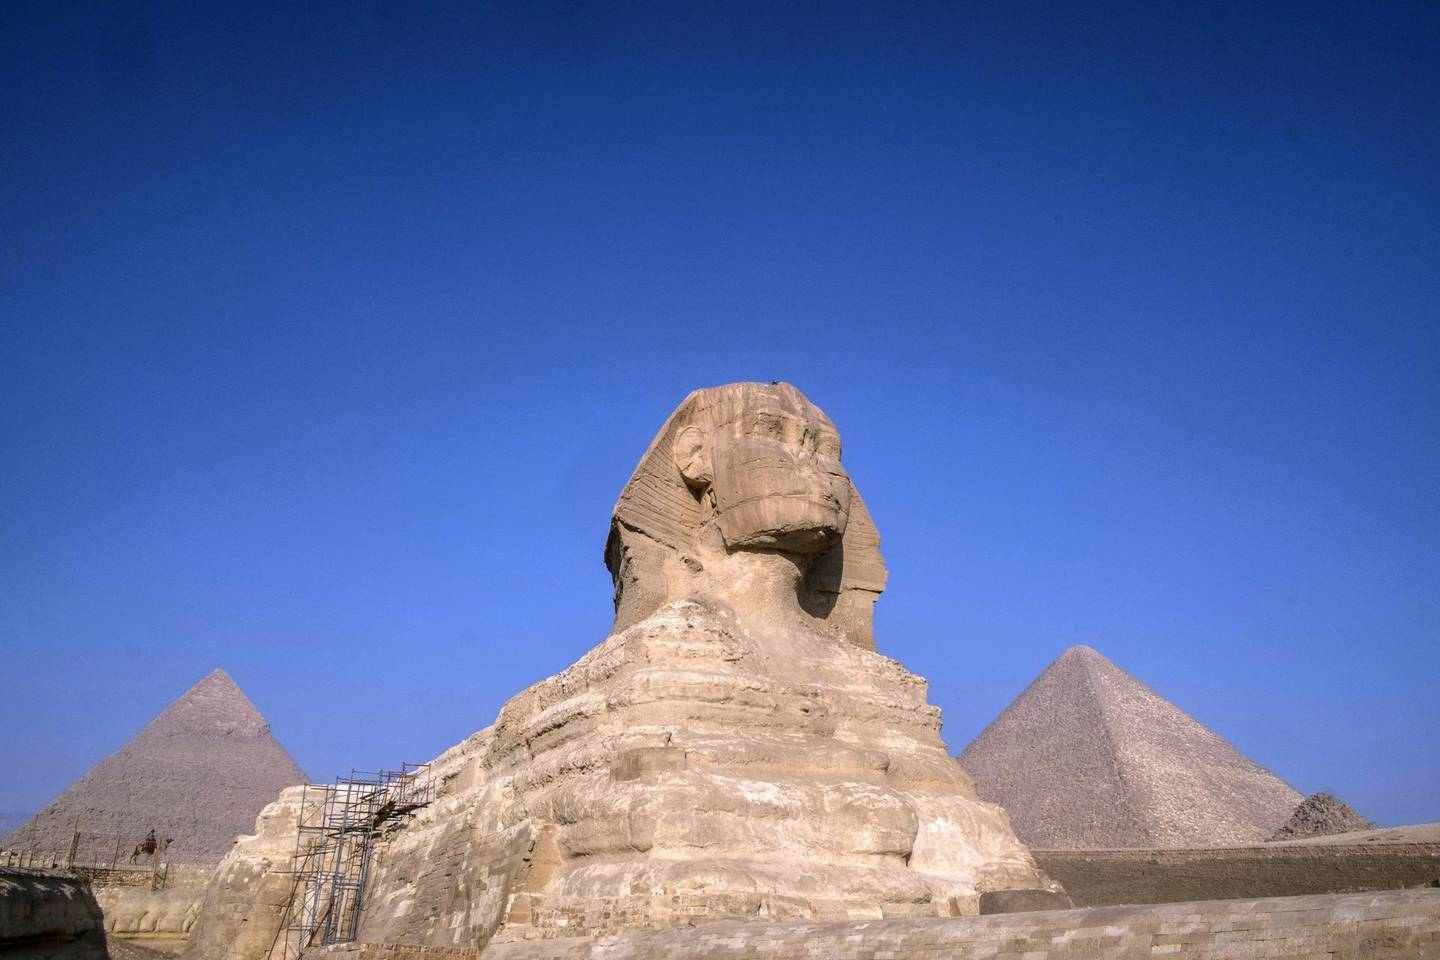 A picture taken on November 20, 2019 shows the Sphinx at the Giza Pyramids plateau on the western outskirts of the Egyptian capital Cairo. (Photo by Khaled DESOUKI / AFP)